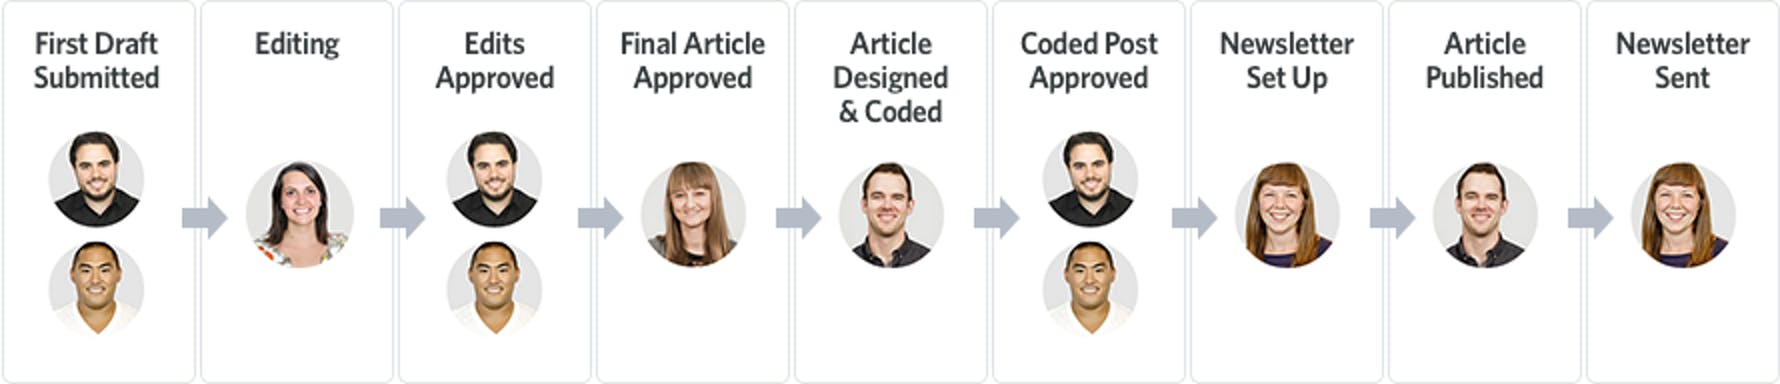 Help Scout Editorial Process